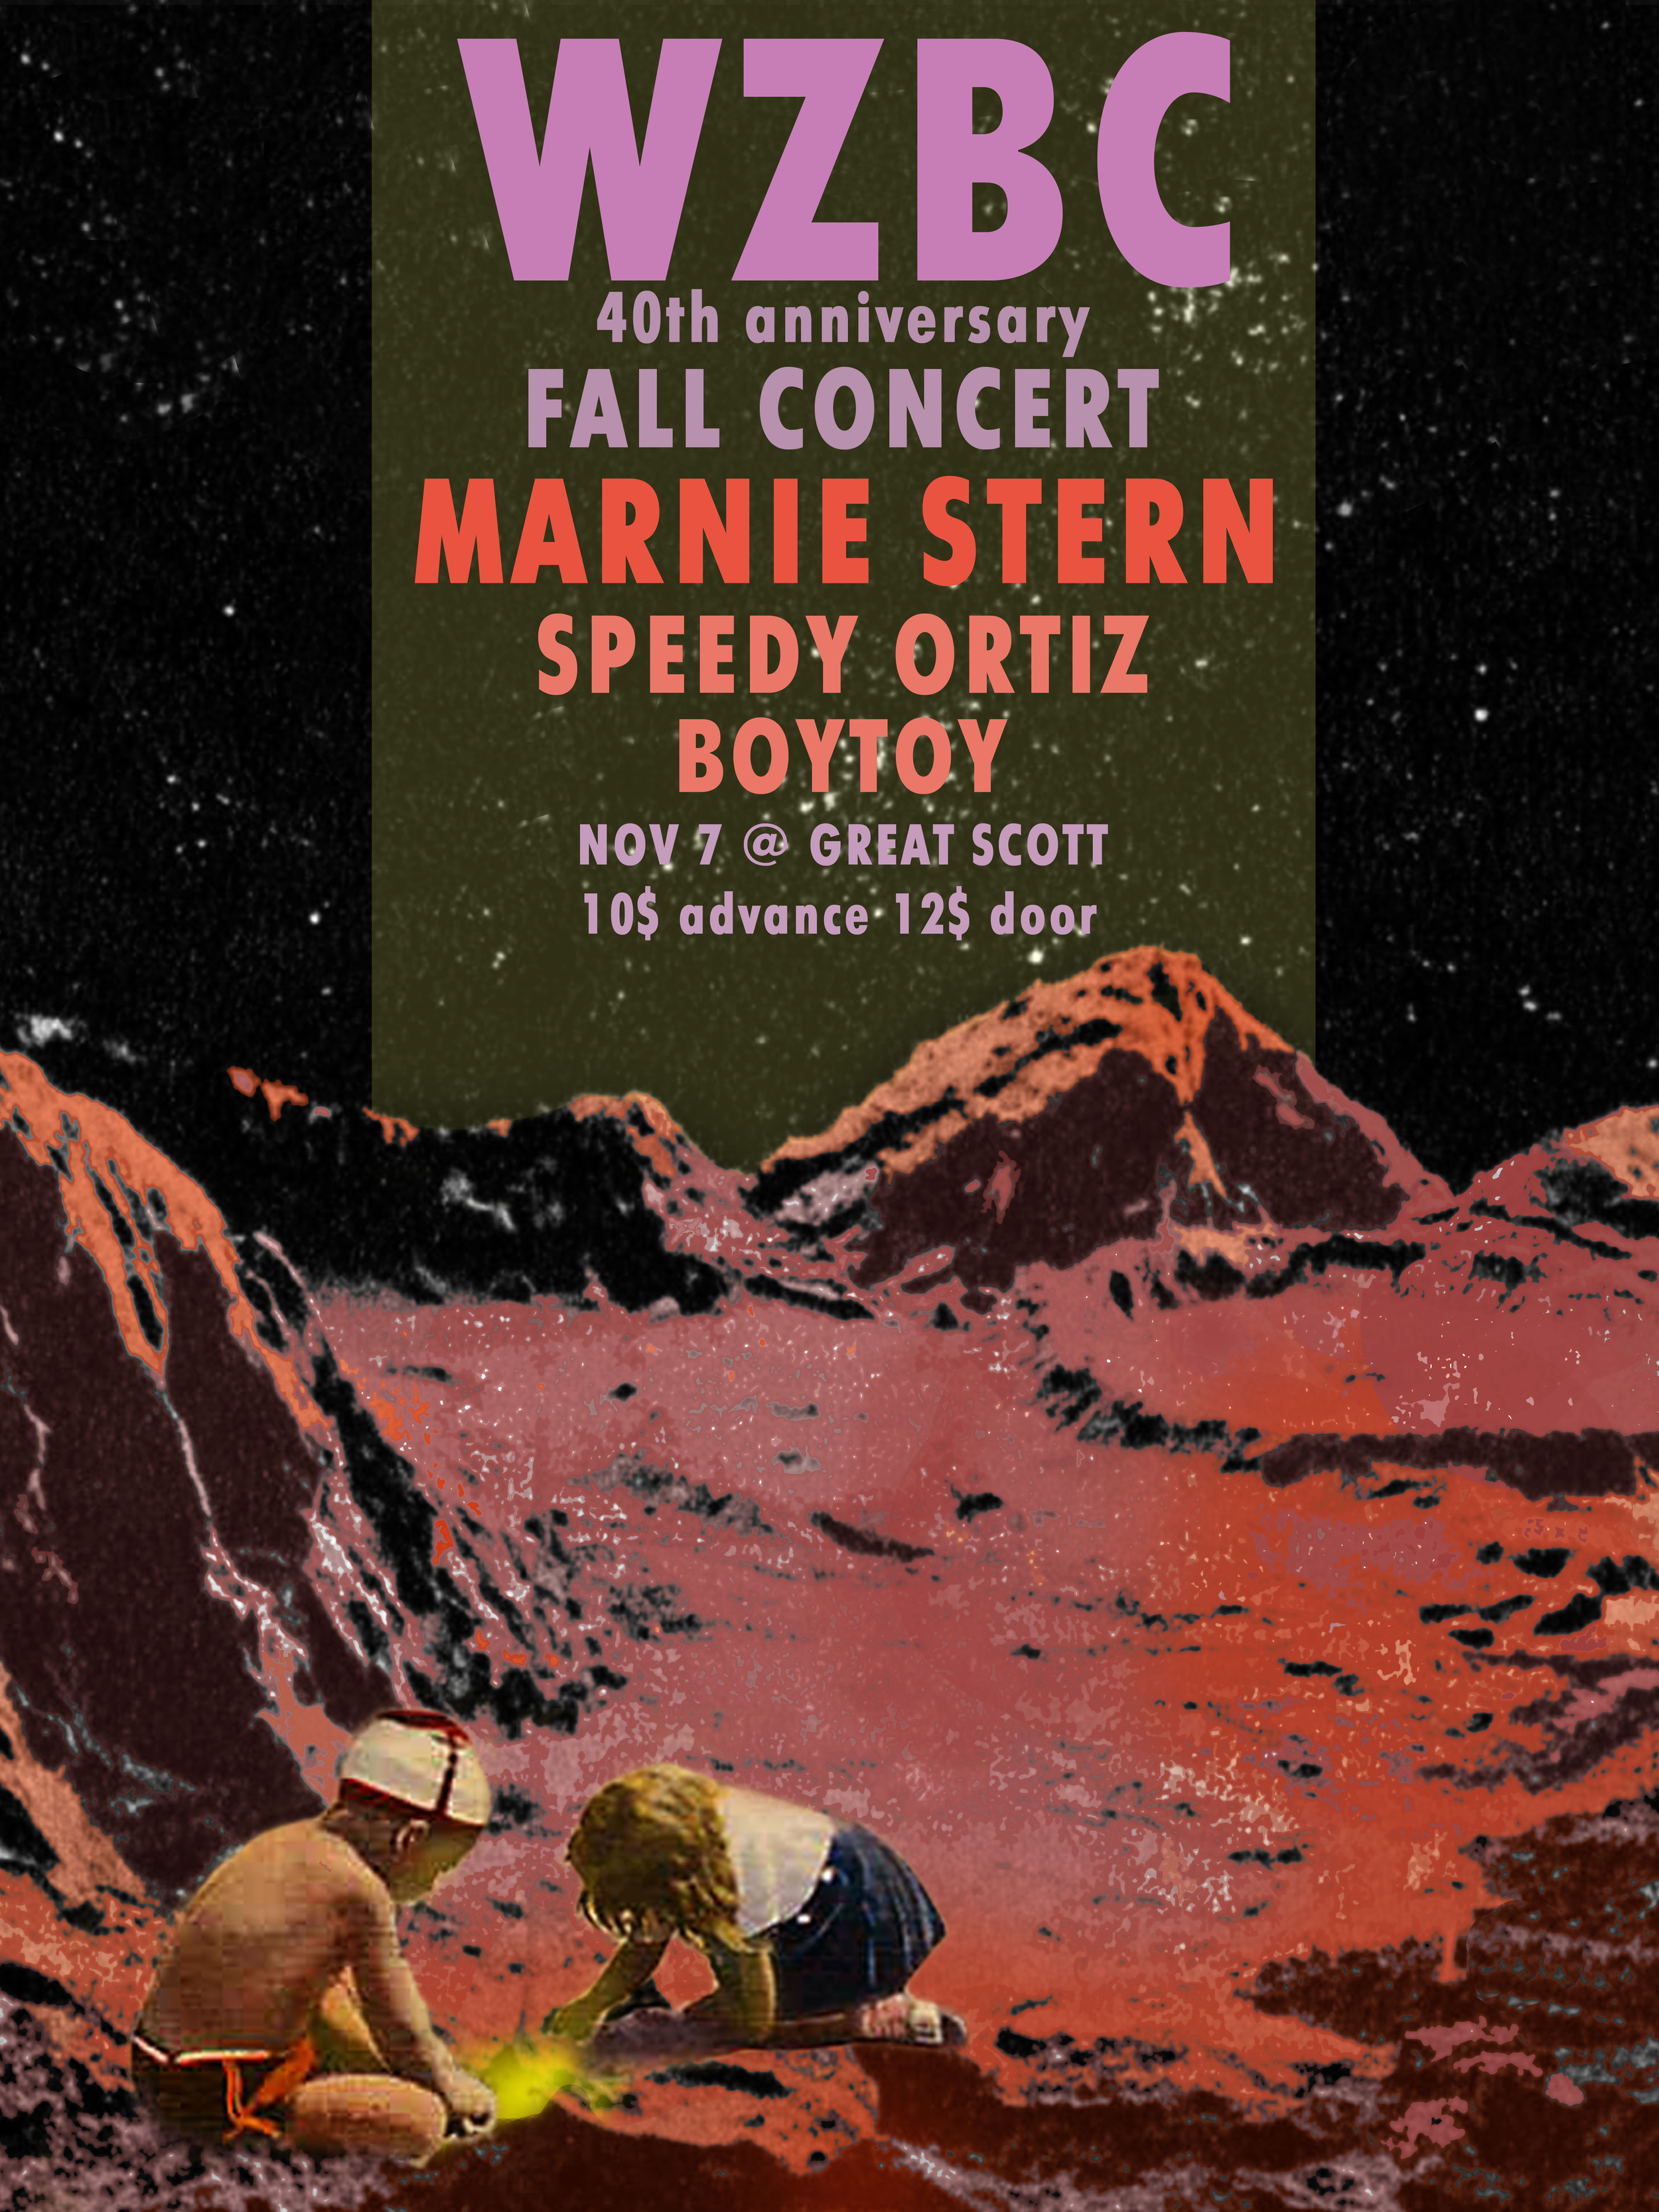 WZBC Fall 2013 Concert Poster